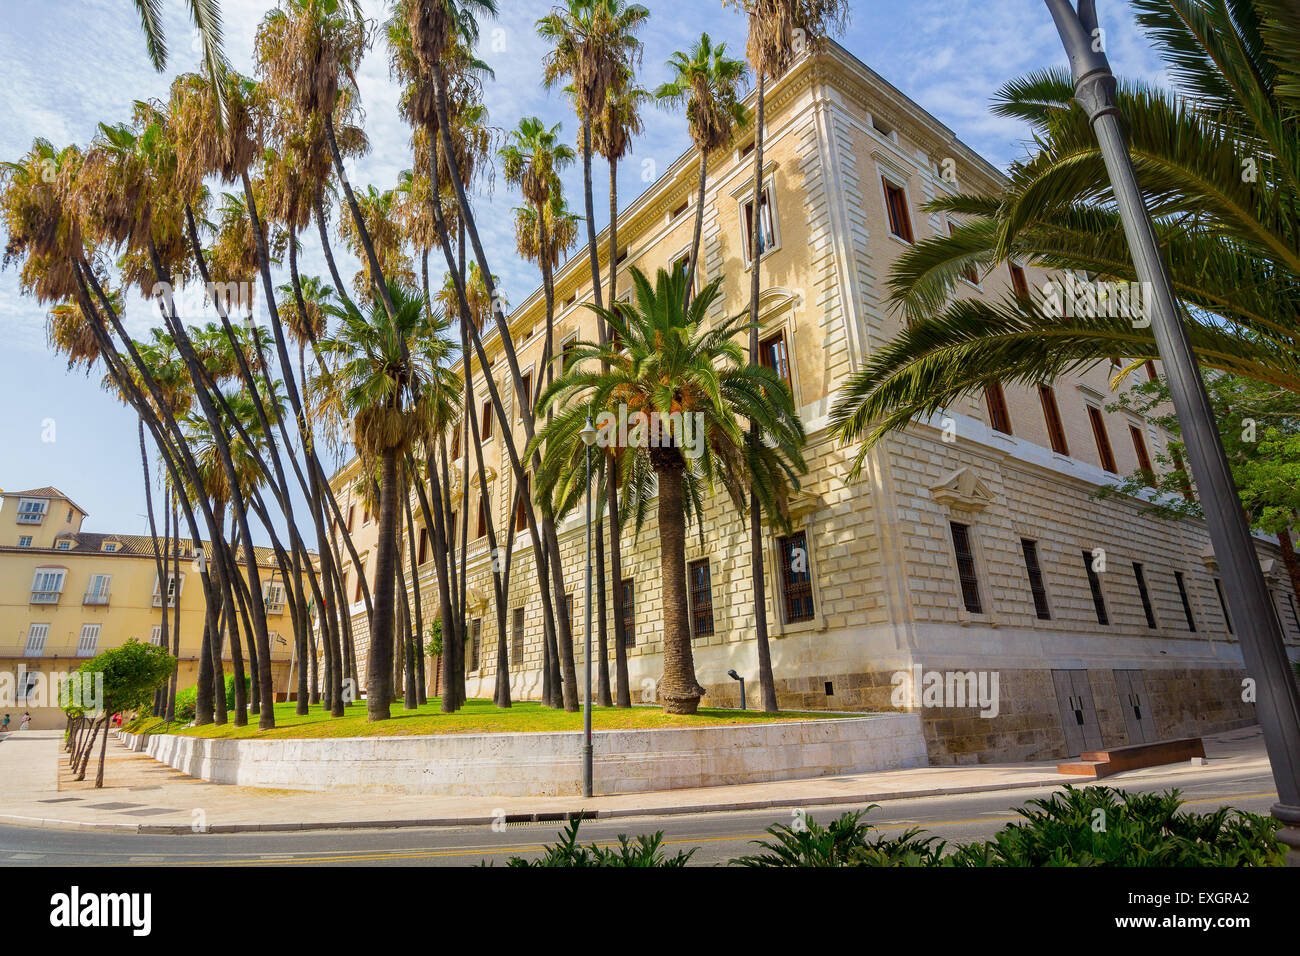 Palace of the Customs Office in Malaga, Spain - Stock Image